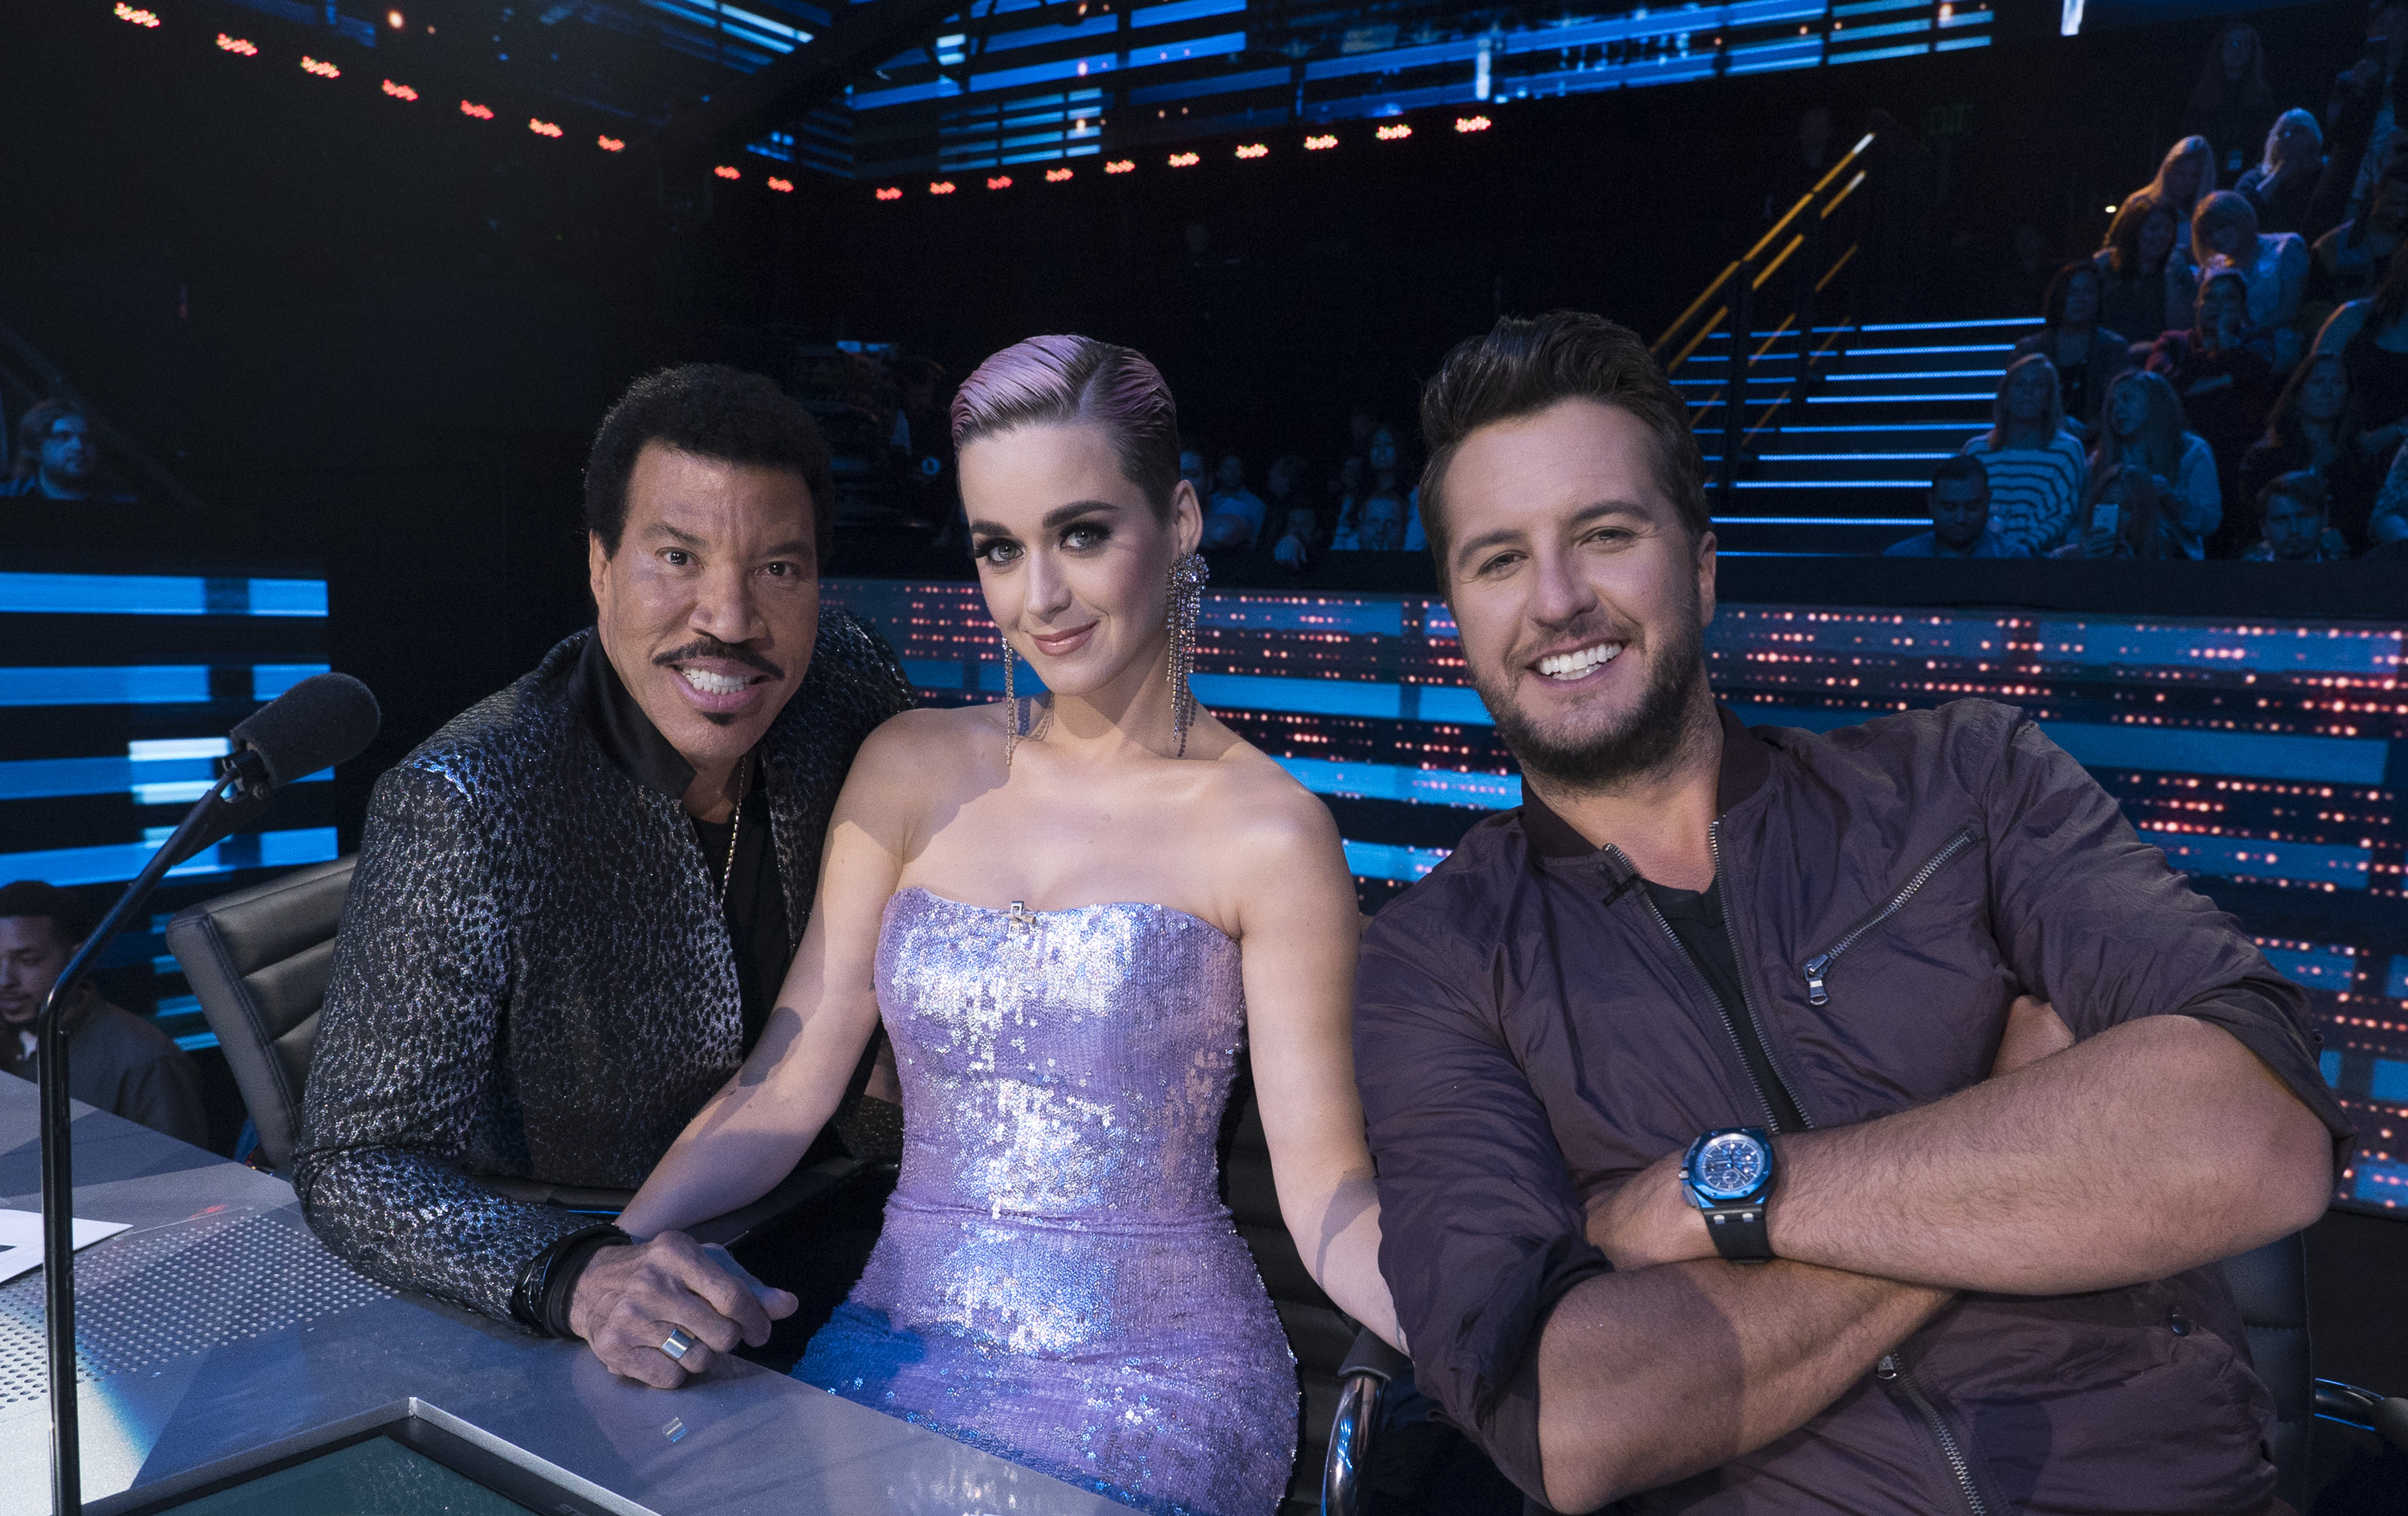 We Knew That American Idol On ABC Would Unleash An Opportunity For Singers From All Walks Of Life To Realize Their Dreams And These Incredible